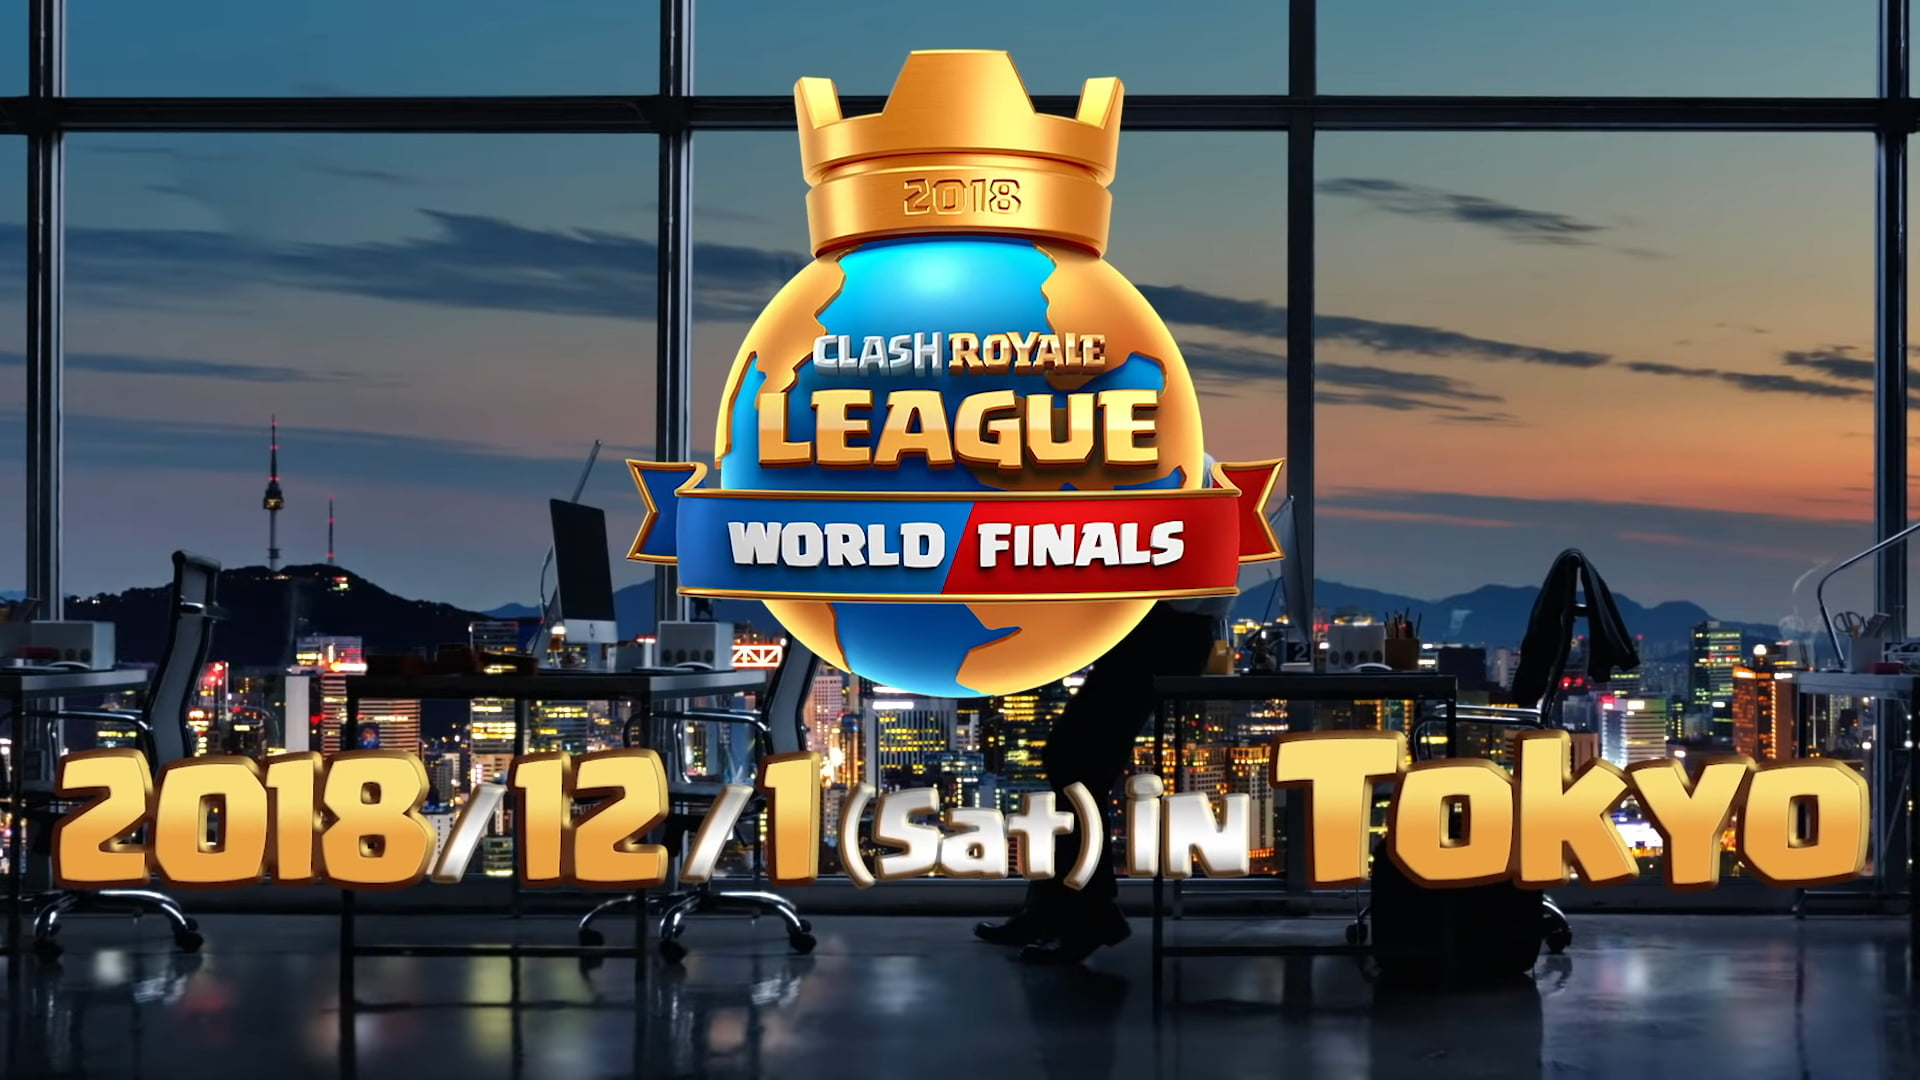 Get excited for Clash Royale League Finals